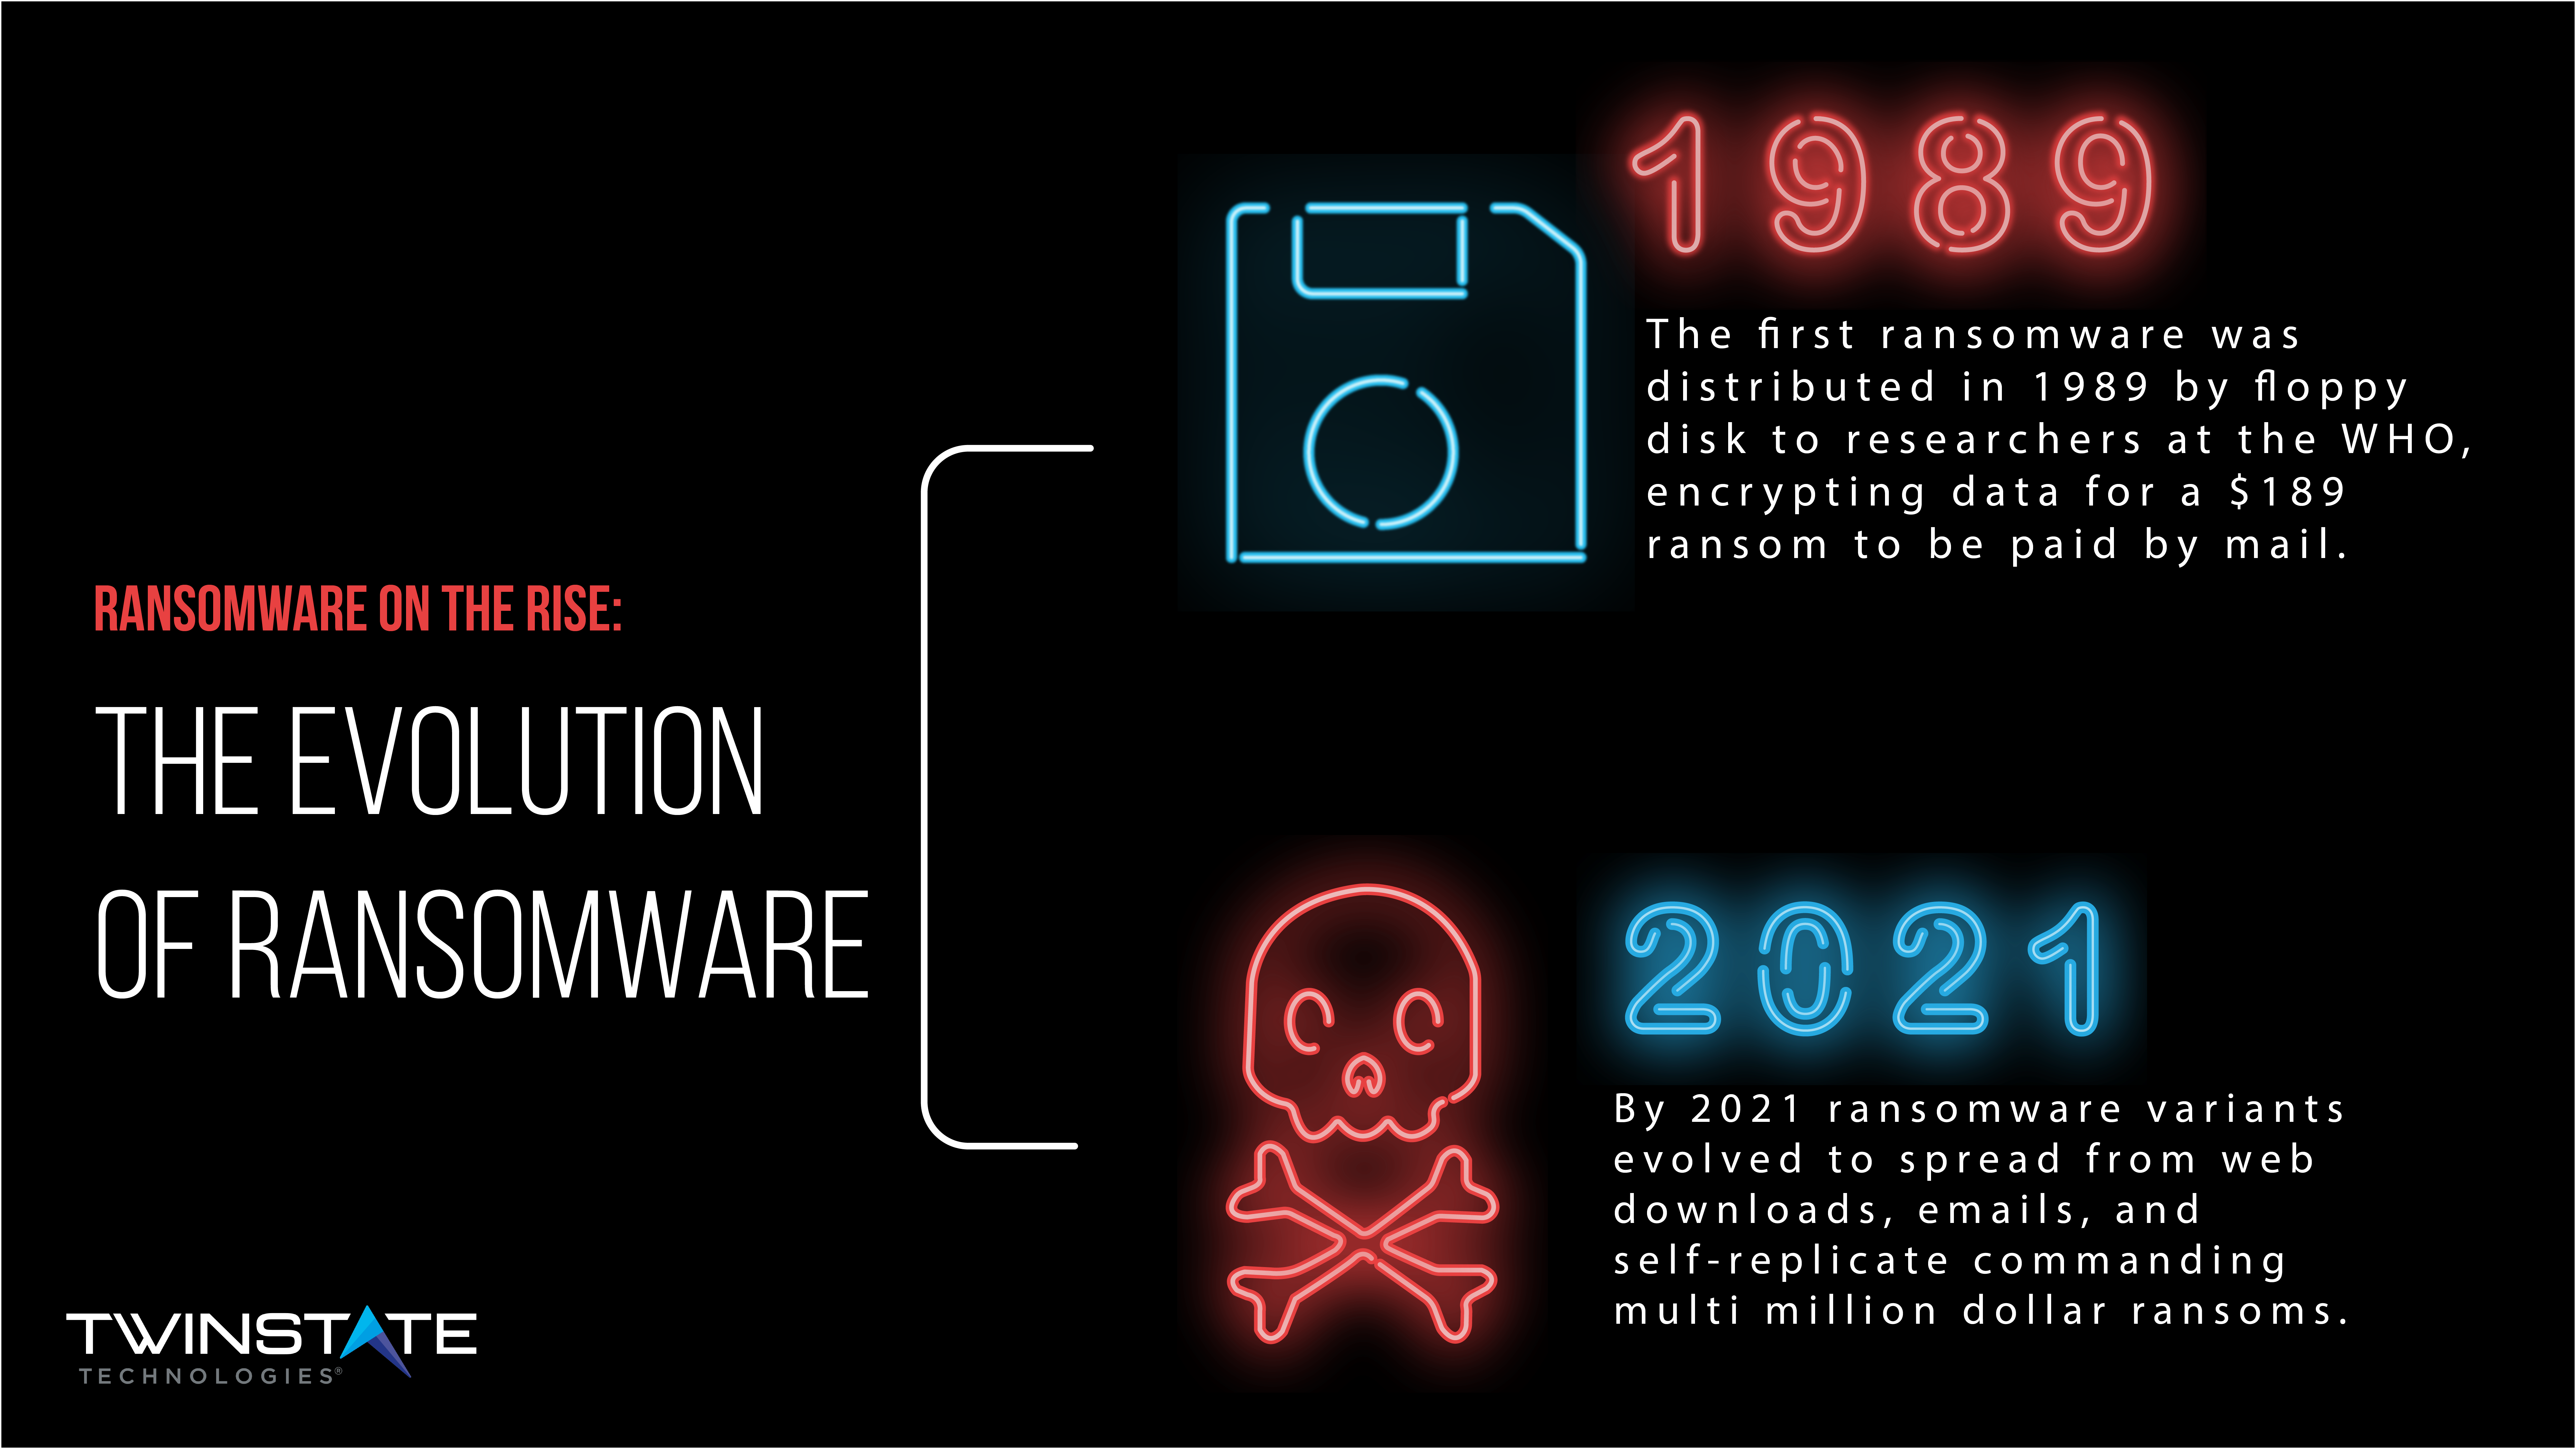 ransomware on the rise timeline of ransomware evolution from 1989 to 2021